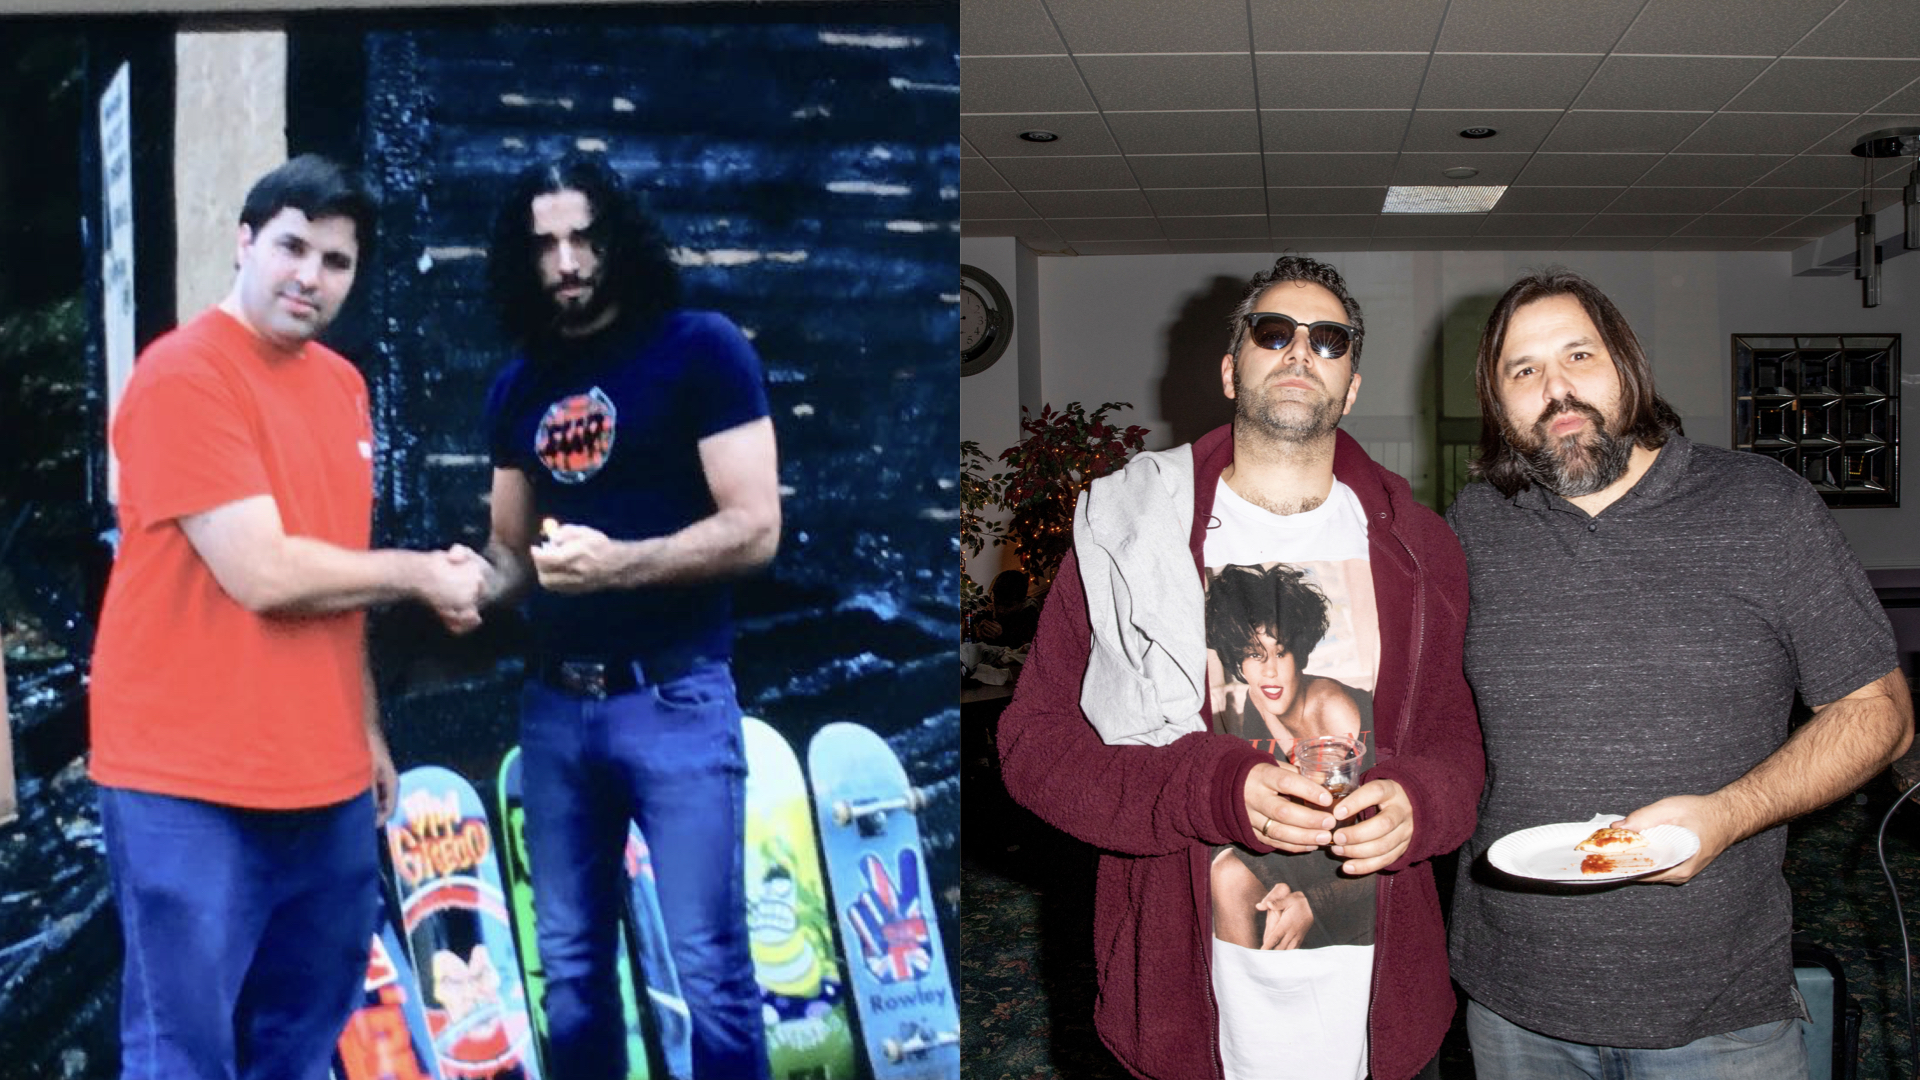 Then and now - Coliseum founding fathers Matt Roman and Arty Vagianos.